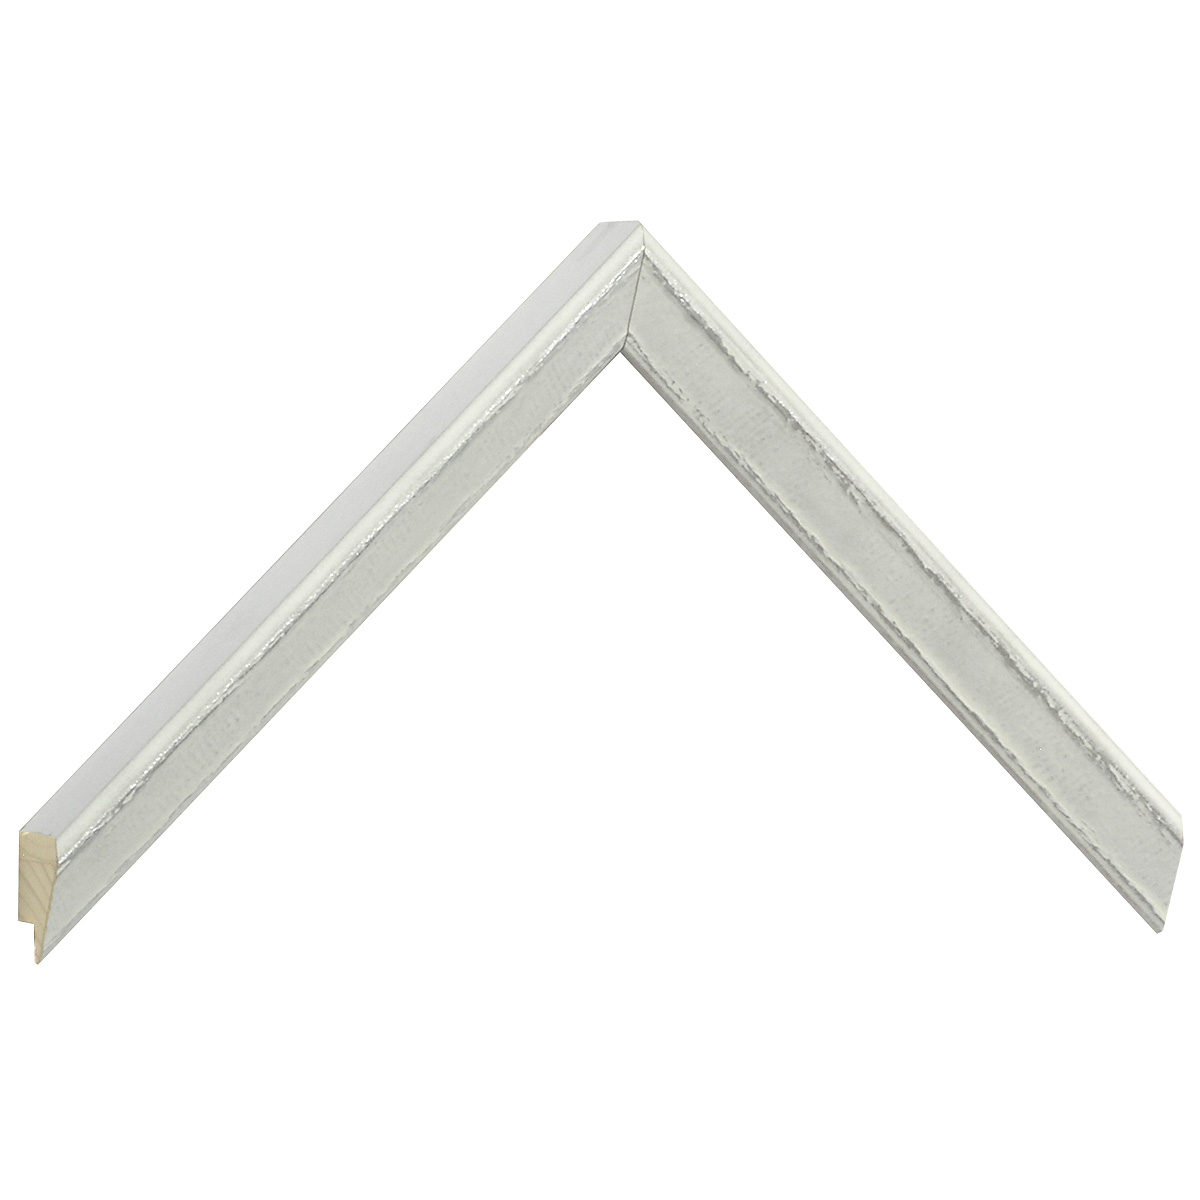 Moulding pine, 21mm height - White, silver decorations